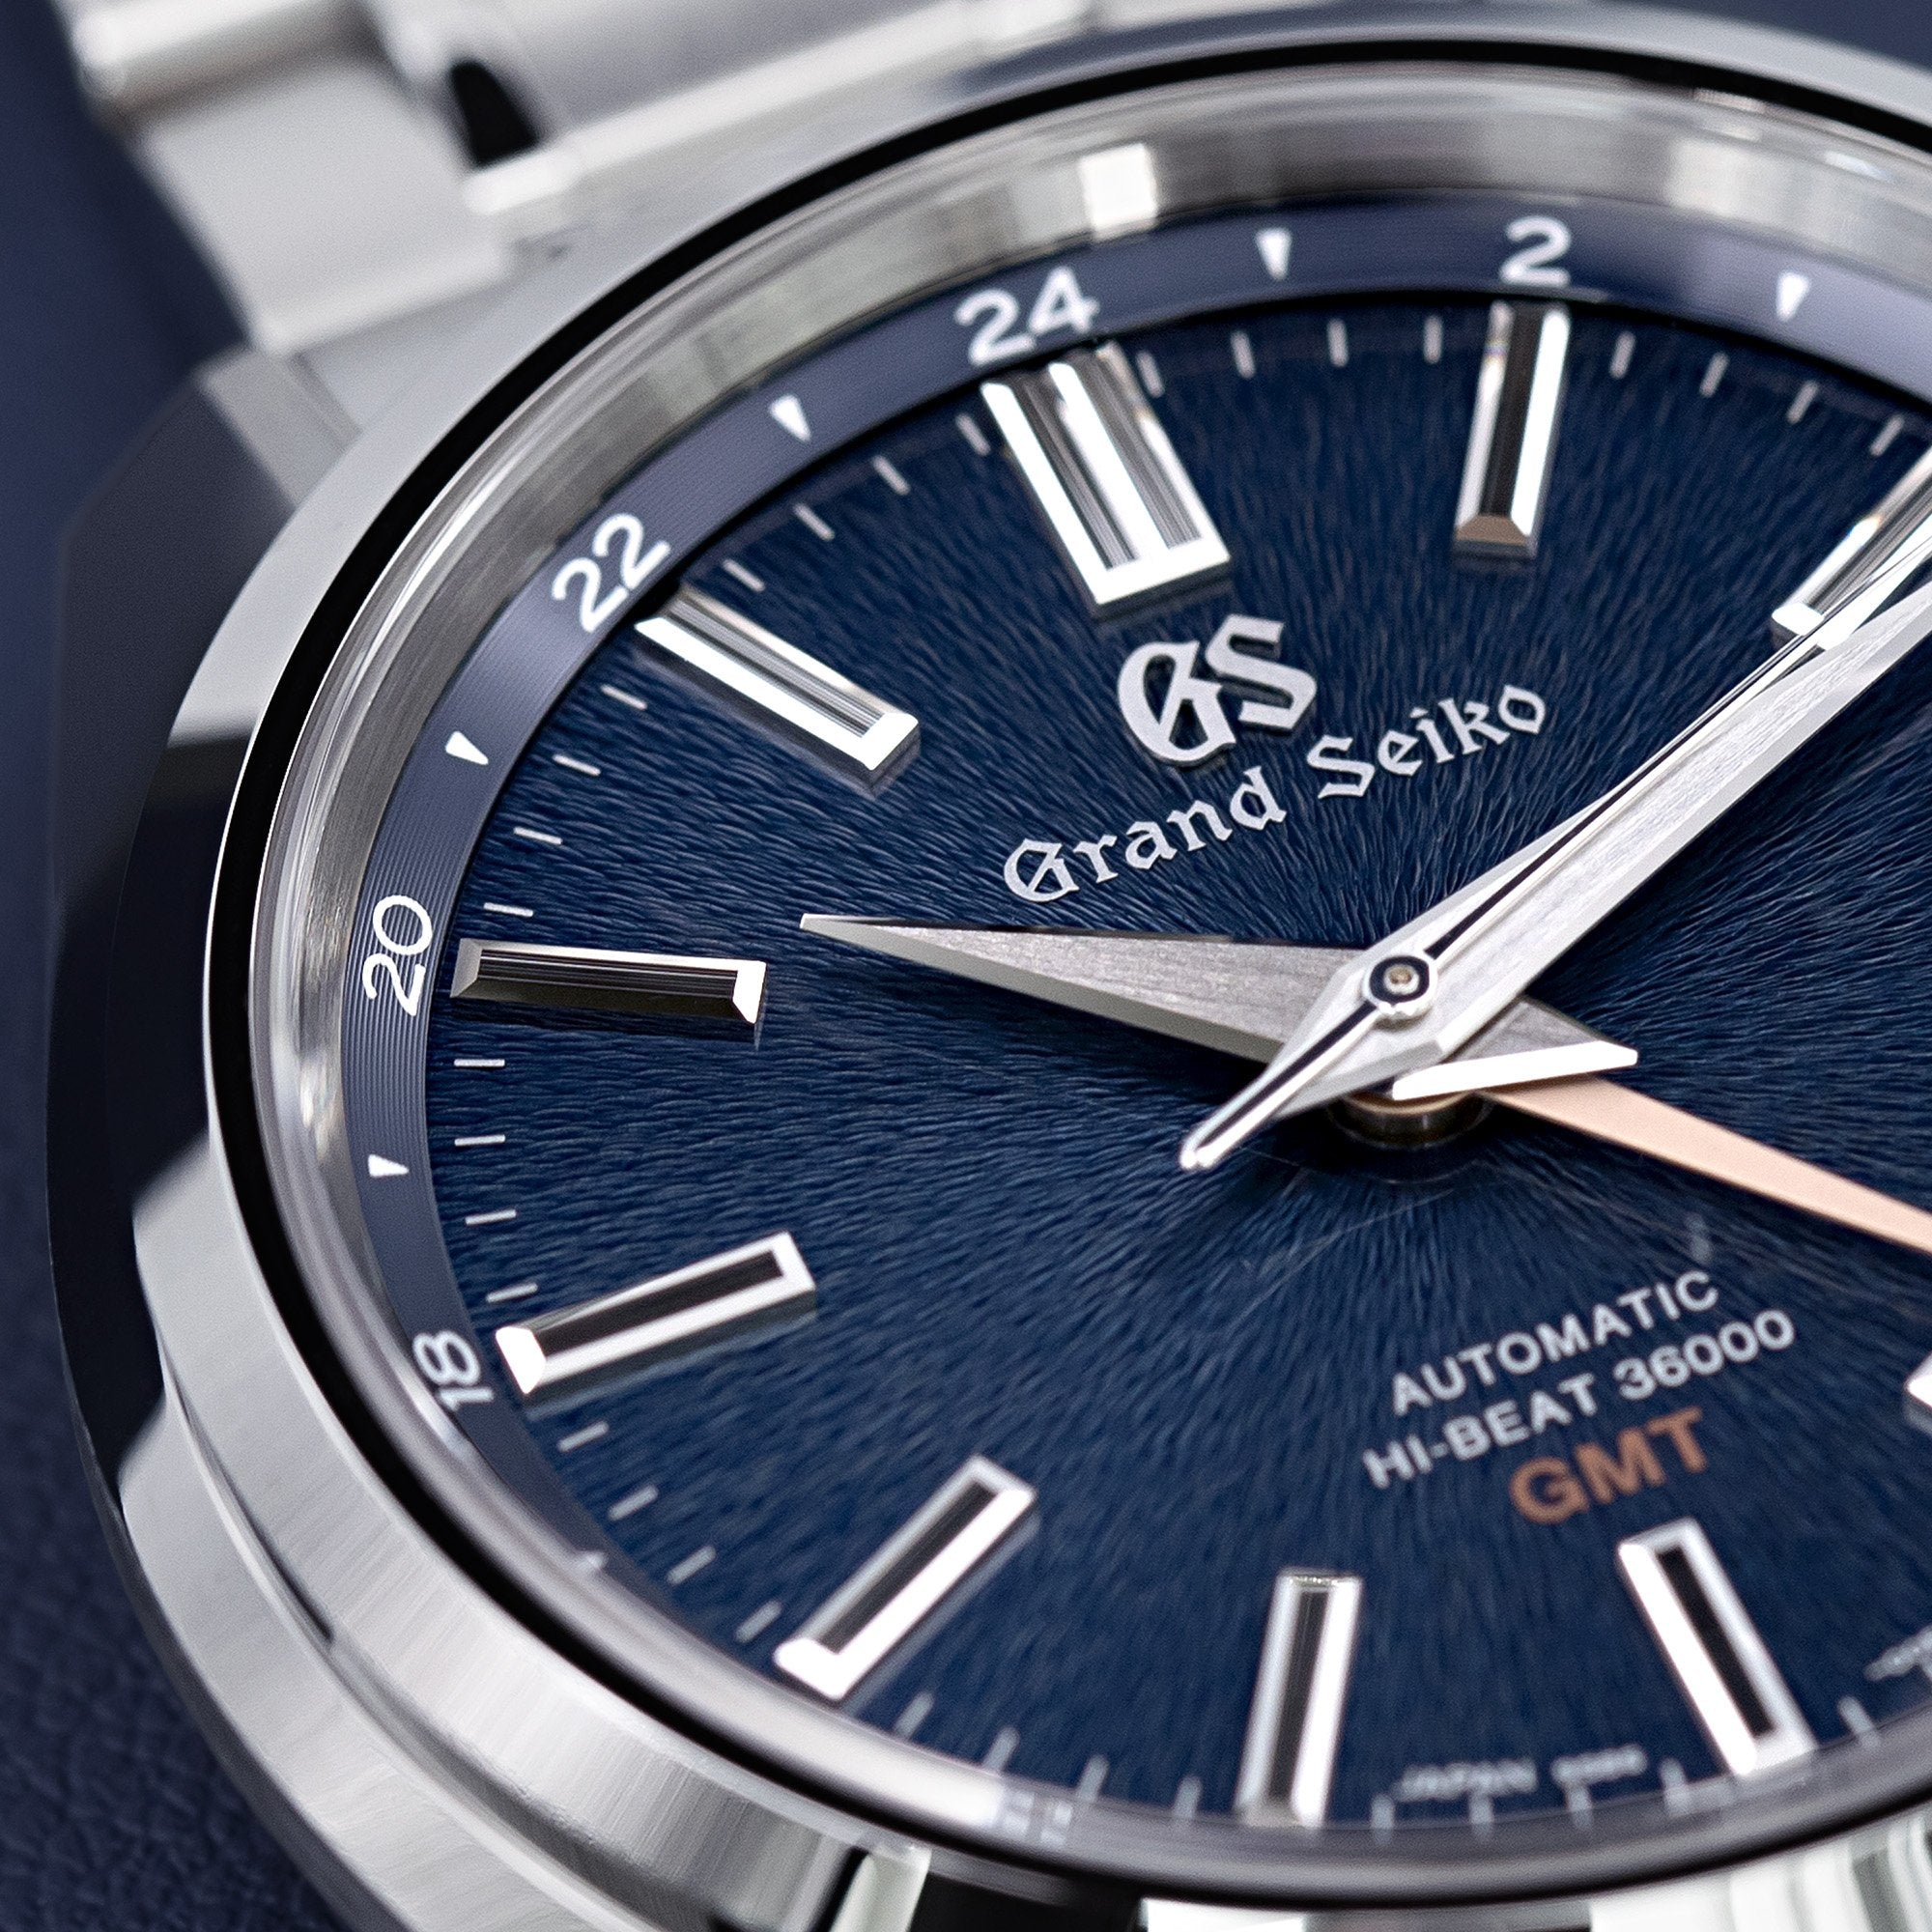 Grand Seiko Boutique Limited Edition SBGJ235 Hi-Beat 36000 GMT (Part 5)